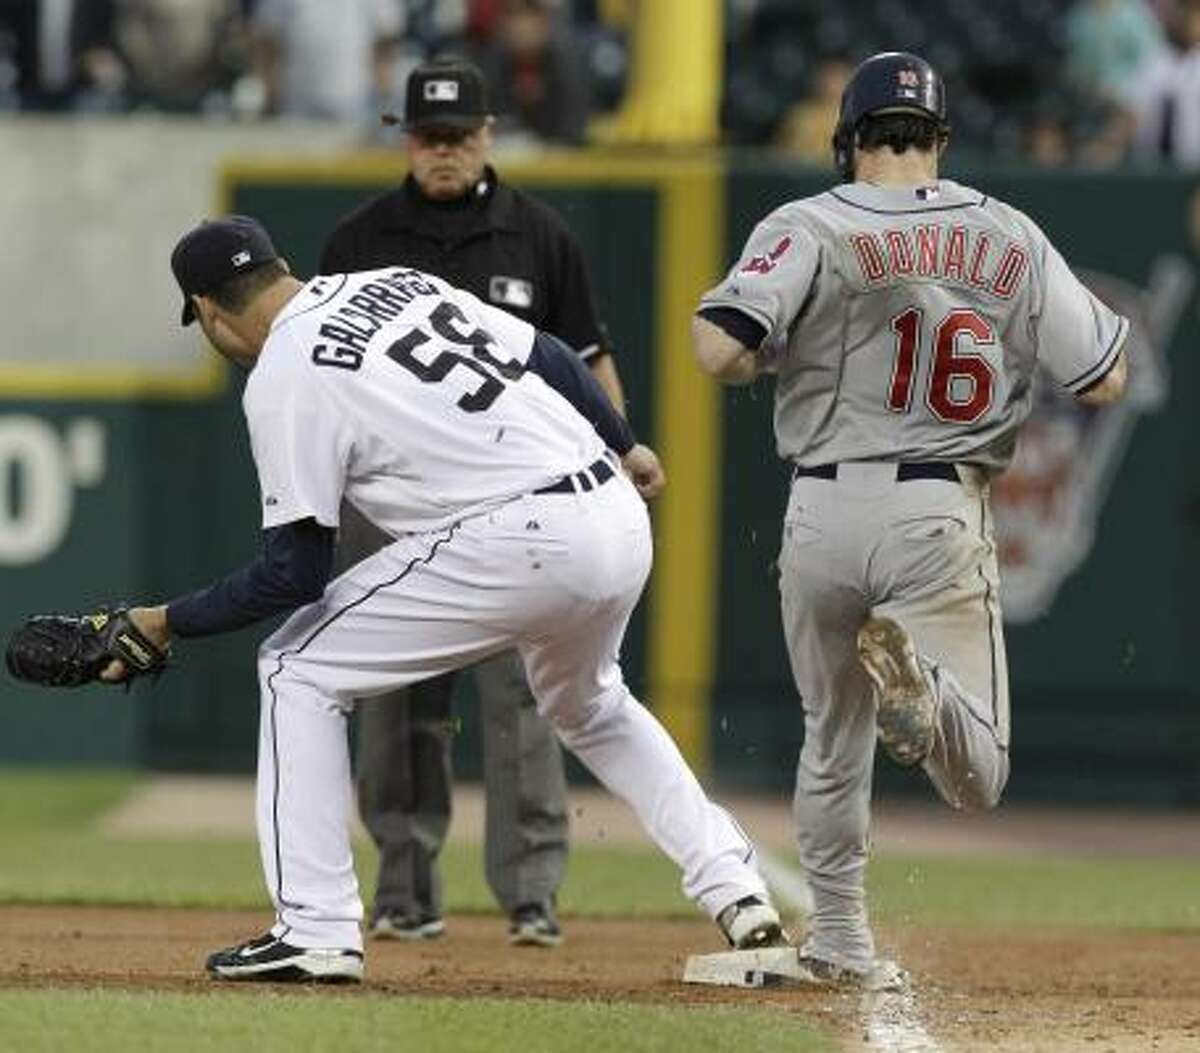 Galarraga caught the ball at least a step ahead of Donald, replays showed.